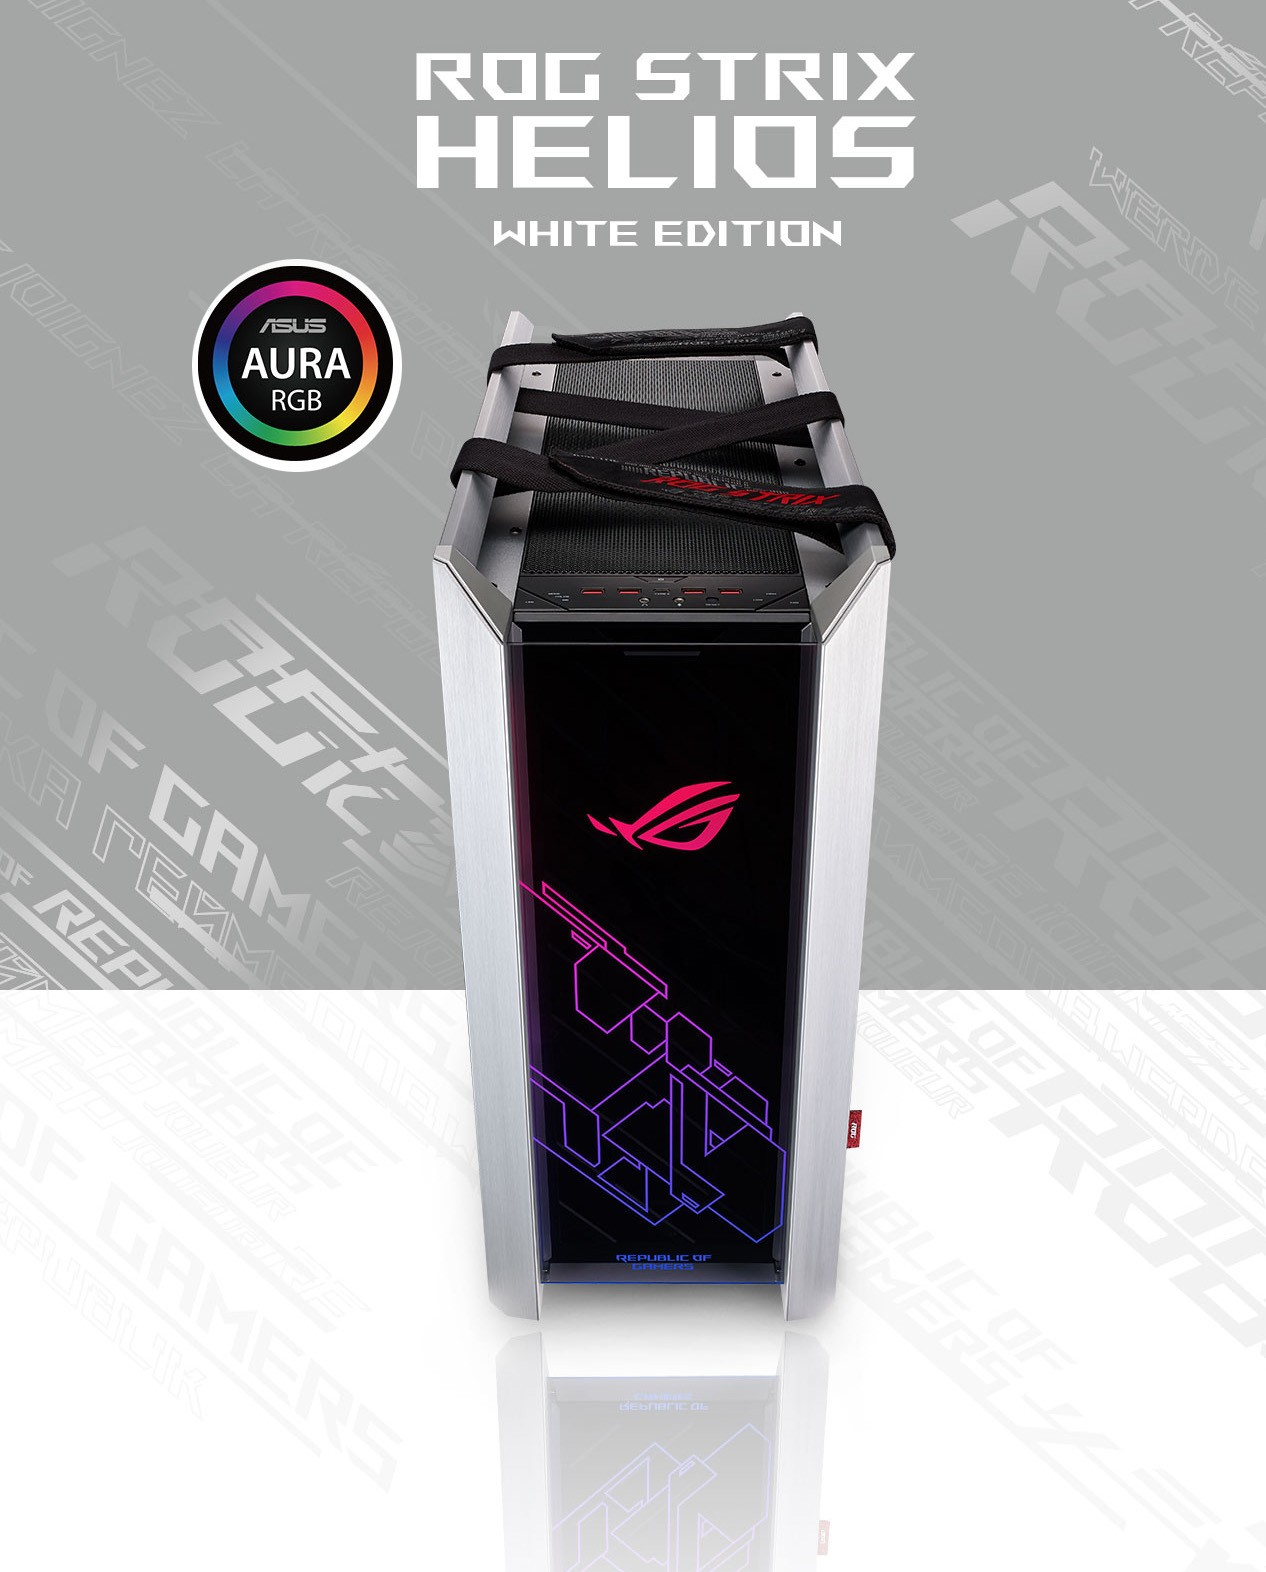 Vỏ case ASUS ROG Strix Helios GX601 White Edition